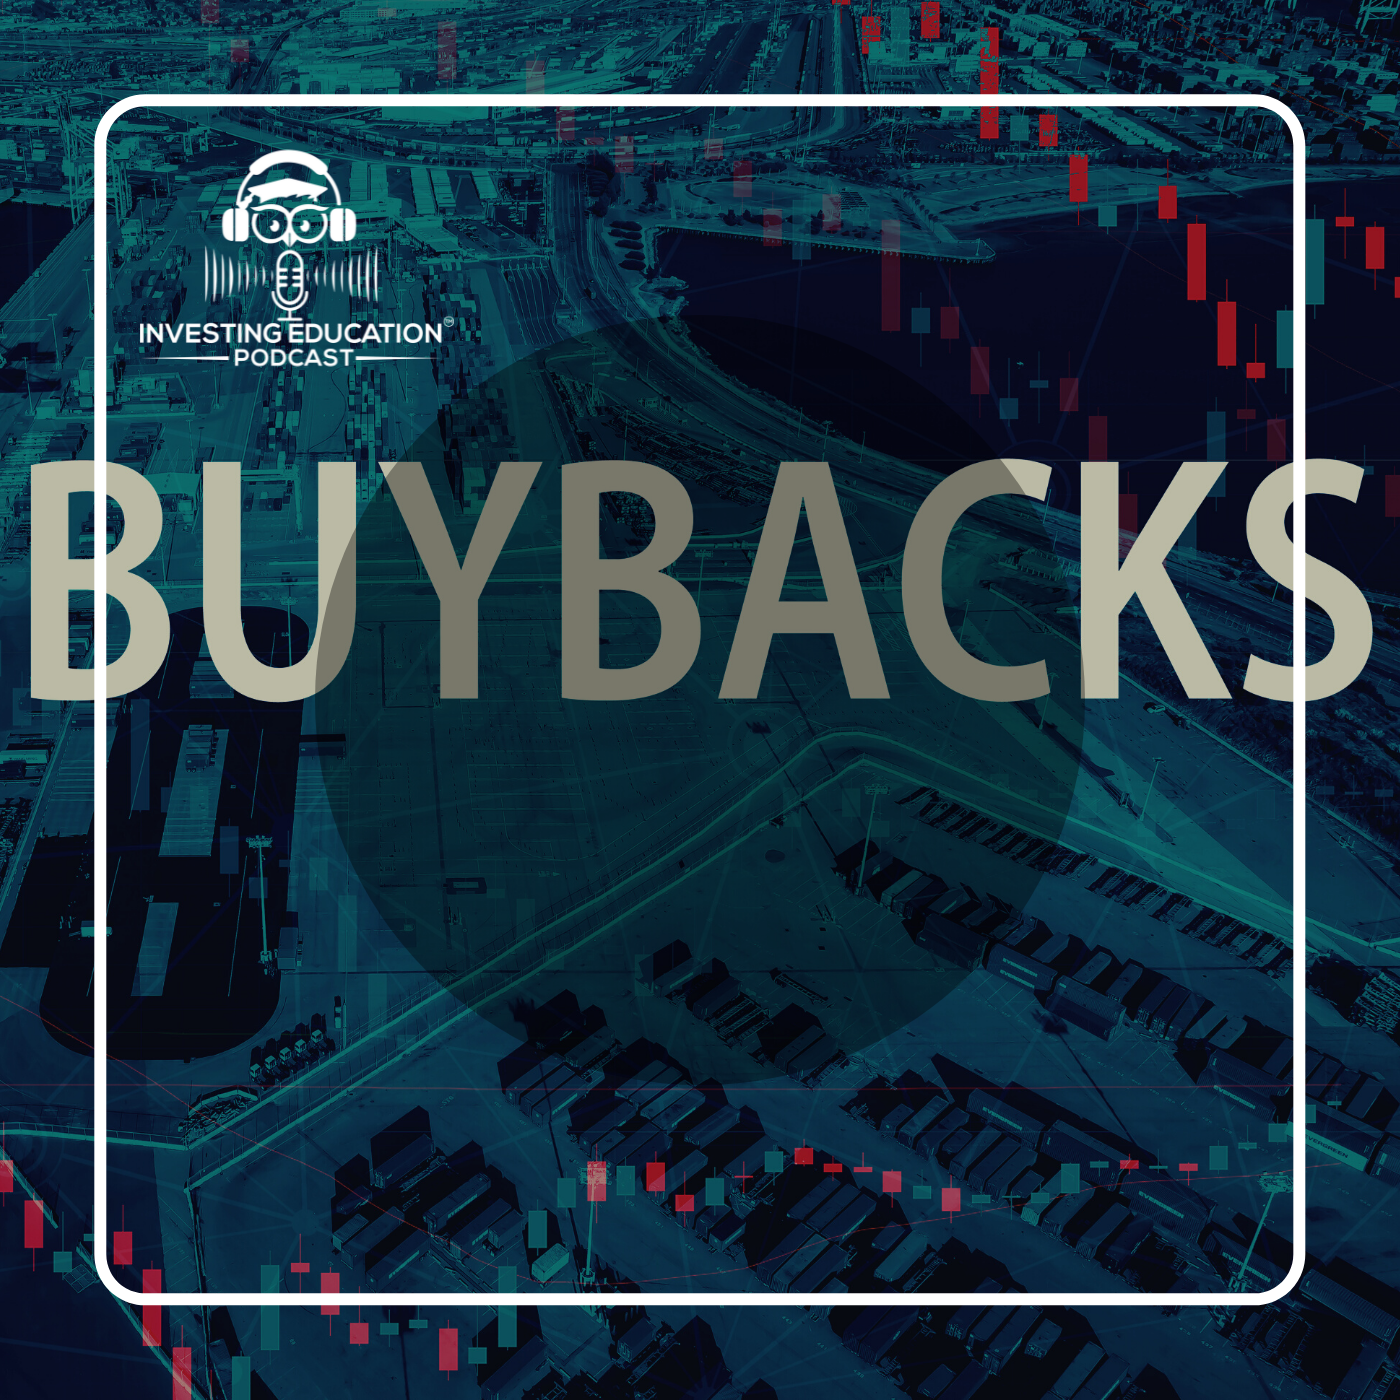 What-Are-Stock-Buybacks-and-How-Can-You-Profit-From-Them